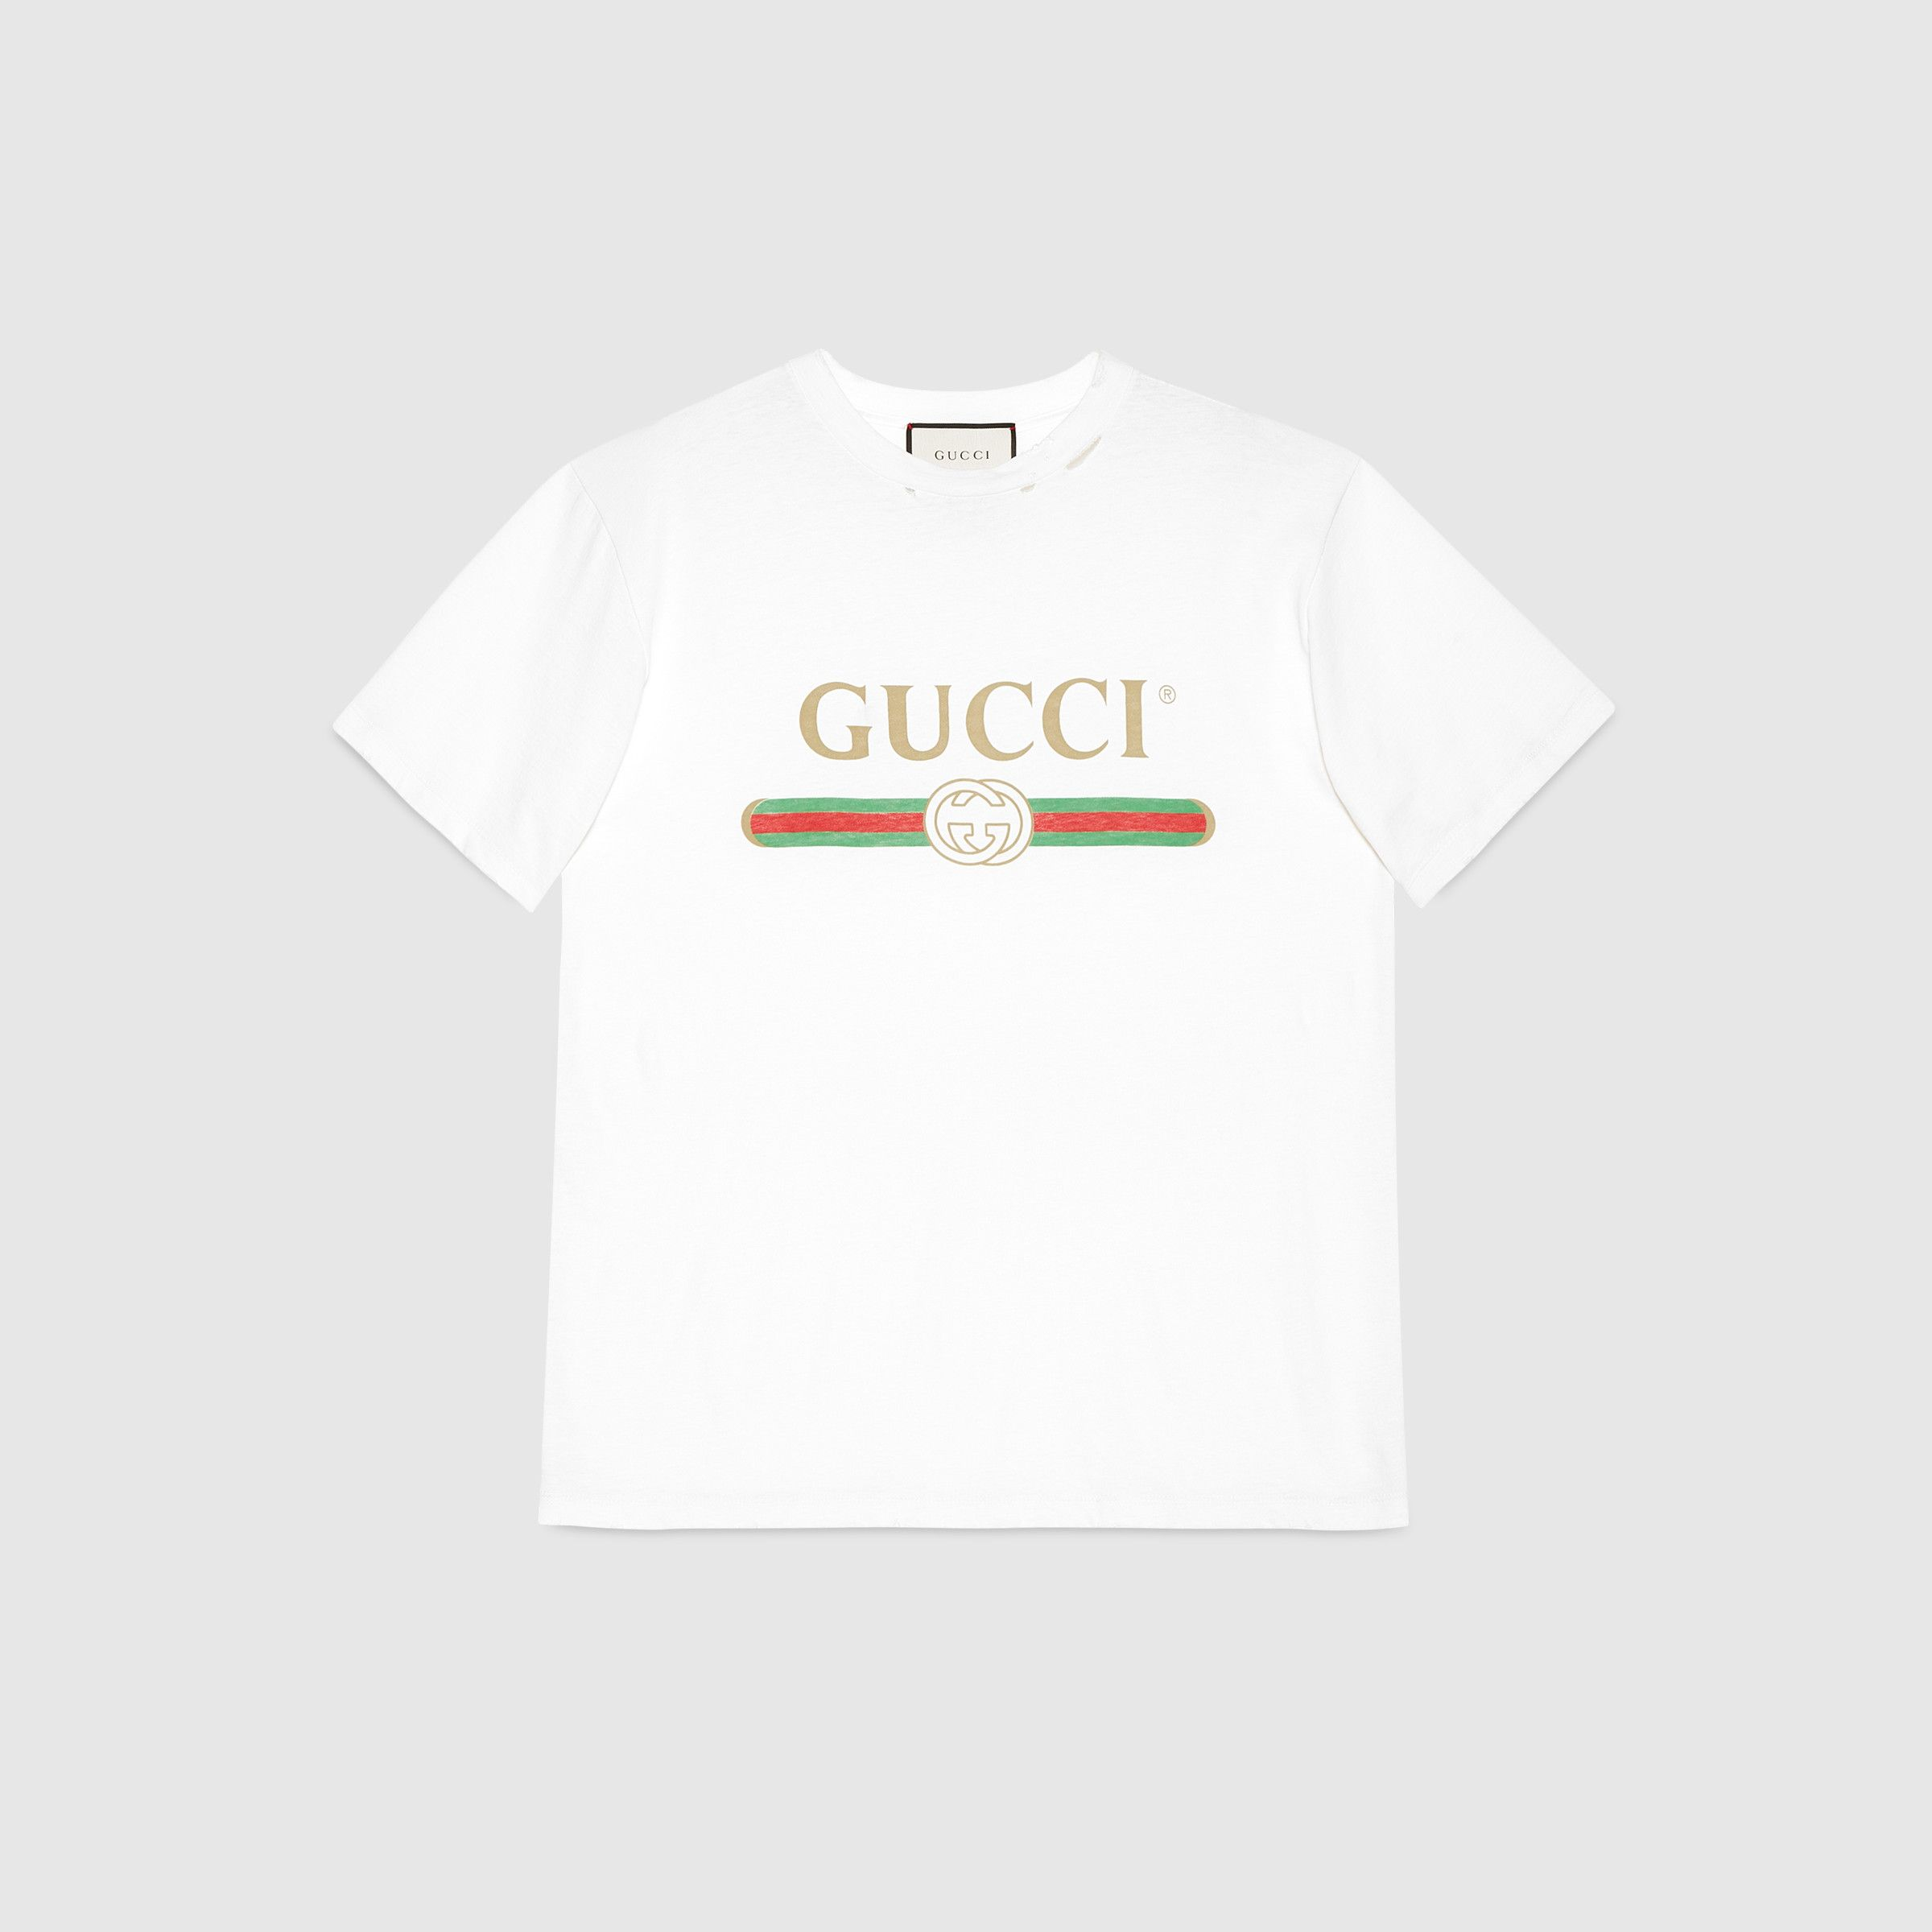 c0ab7691a Oversize T-shirt with Gucci logo | my style | Gucci shirts, Gucci t ...